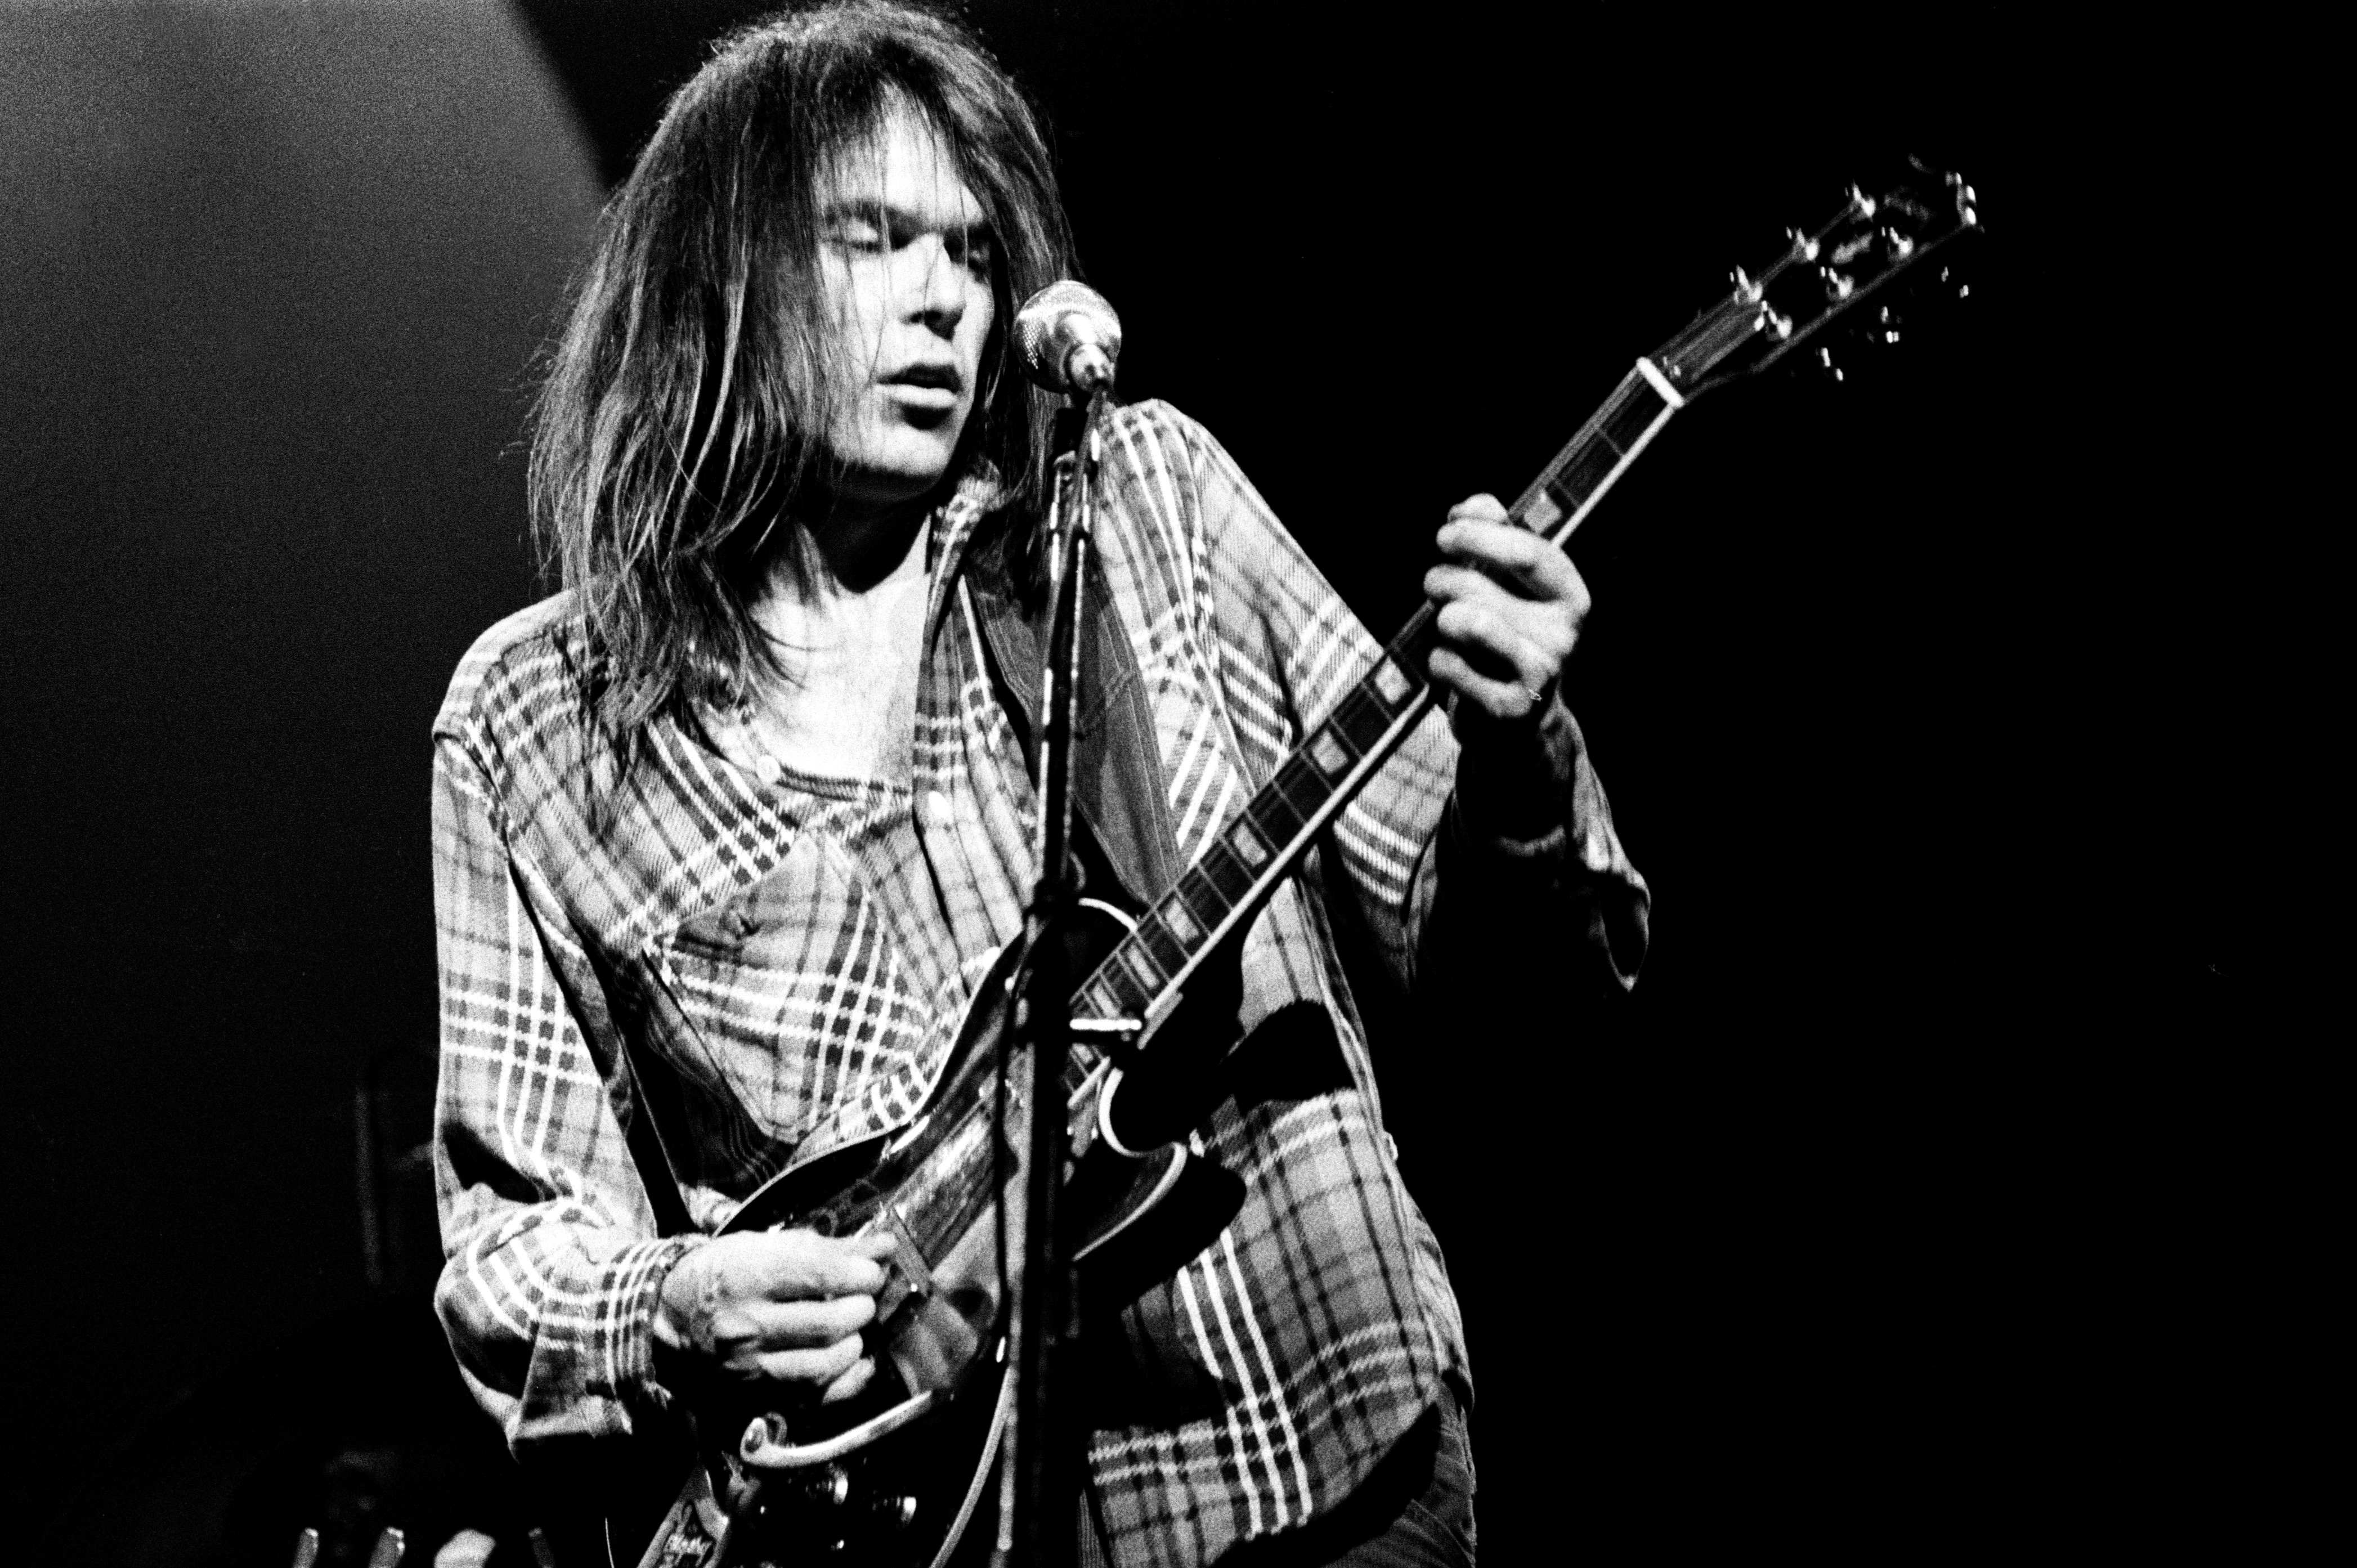 Candian singer-songwriter Neil Young performs on stage at Hammersmith Odeon, London, 28th March 1976. (Photo by Michael Putland/Getty Images)